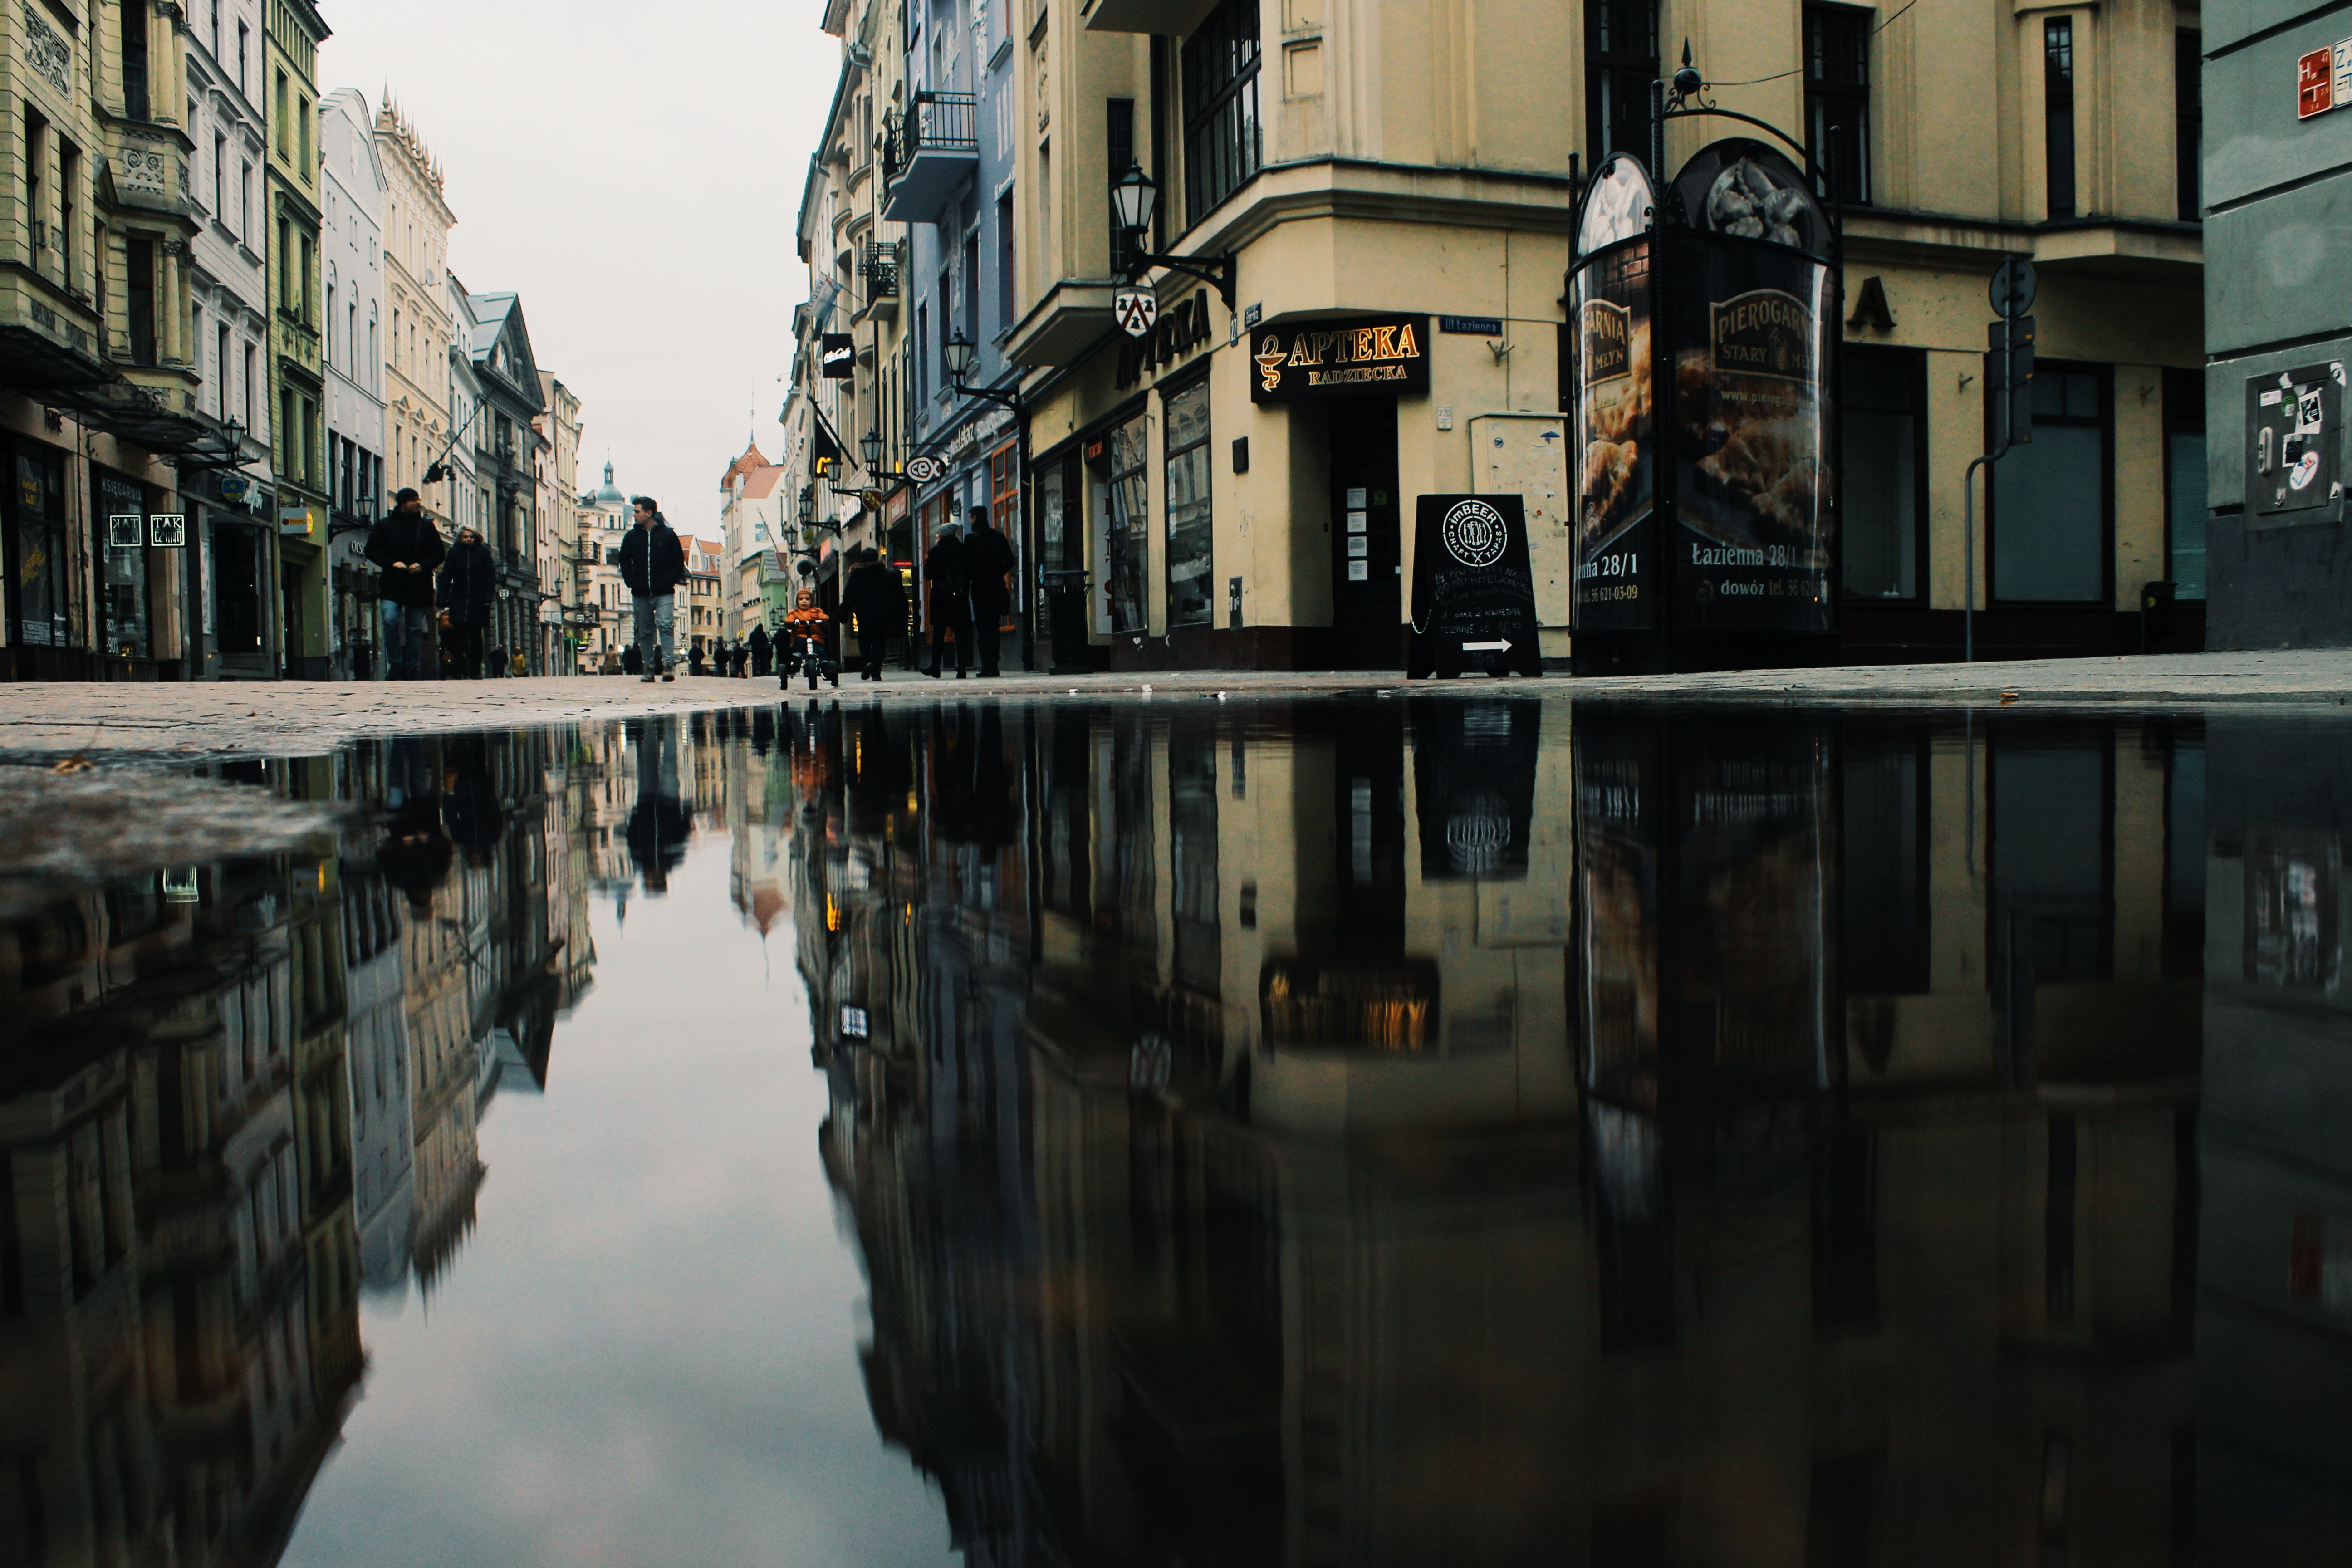 Reflection Of Buildings On Puddle